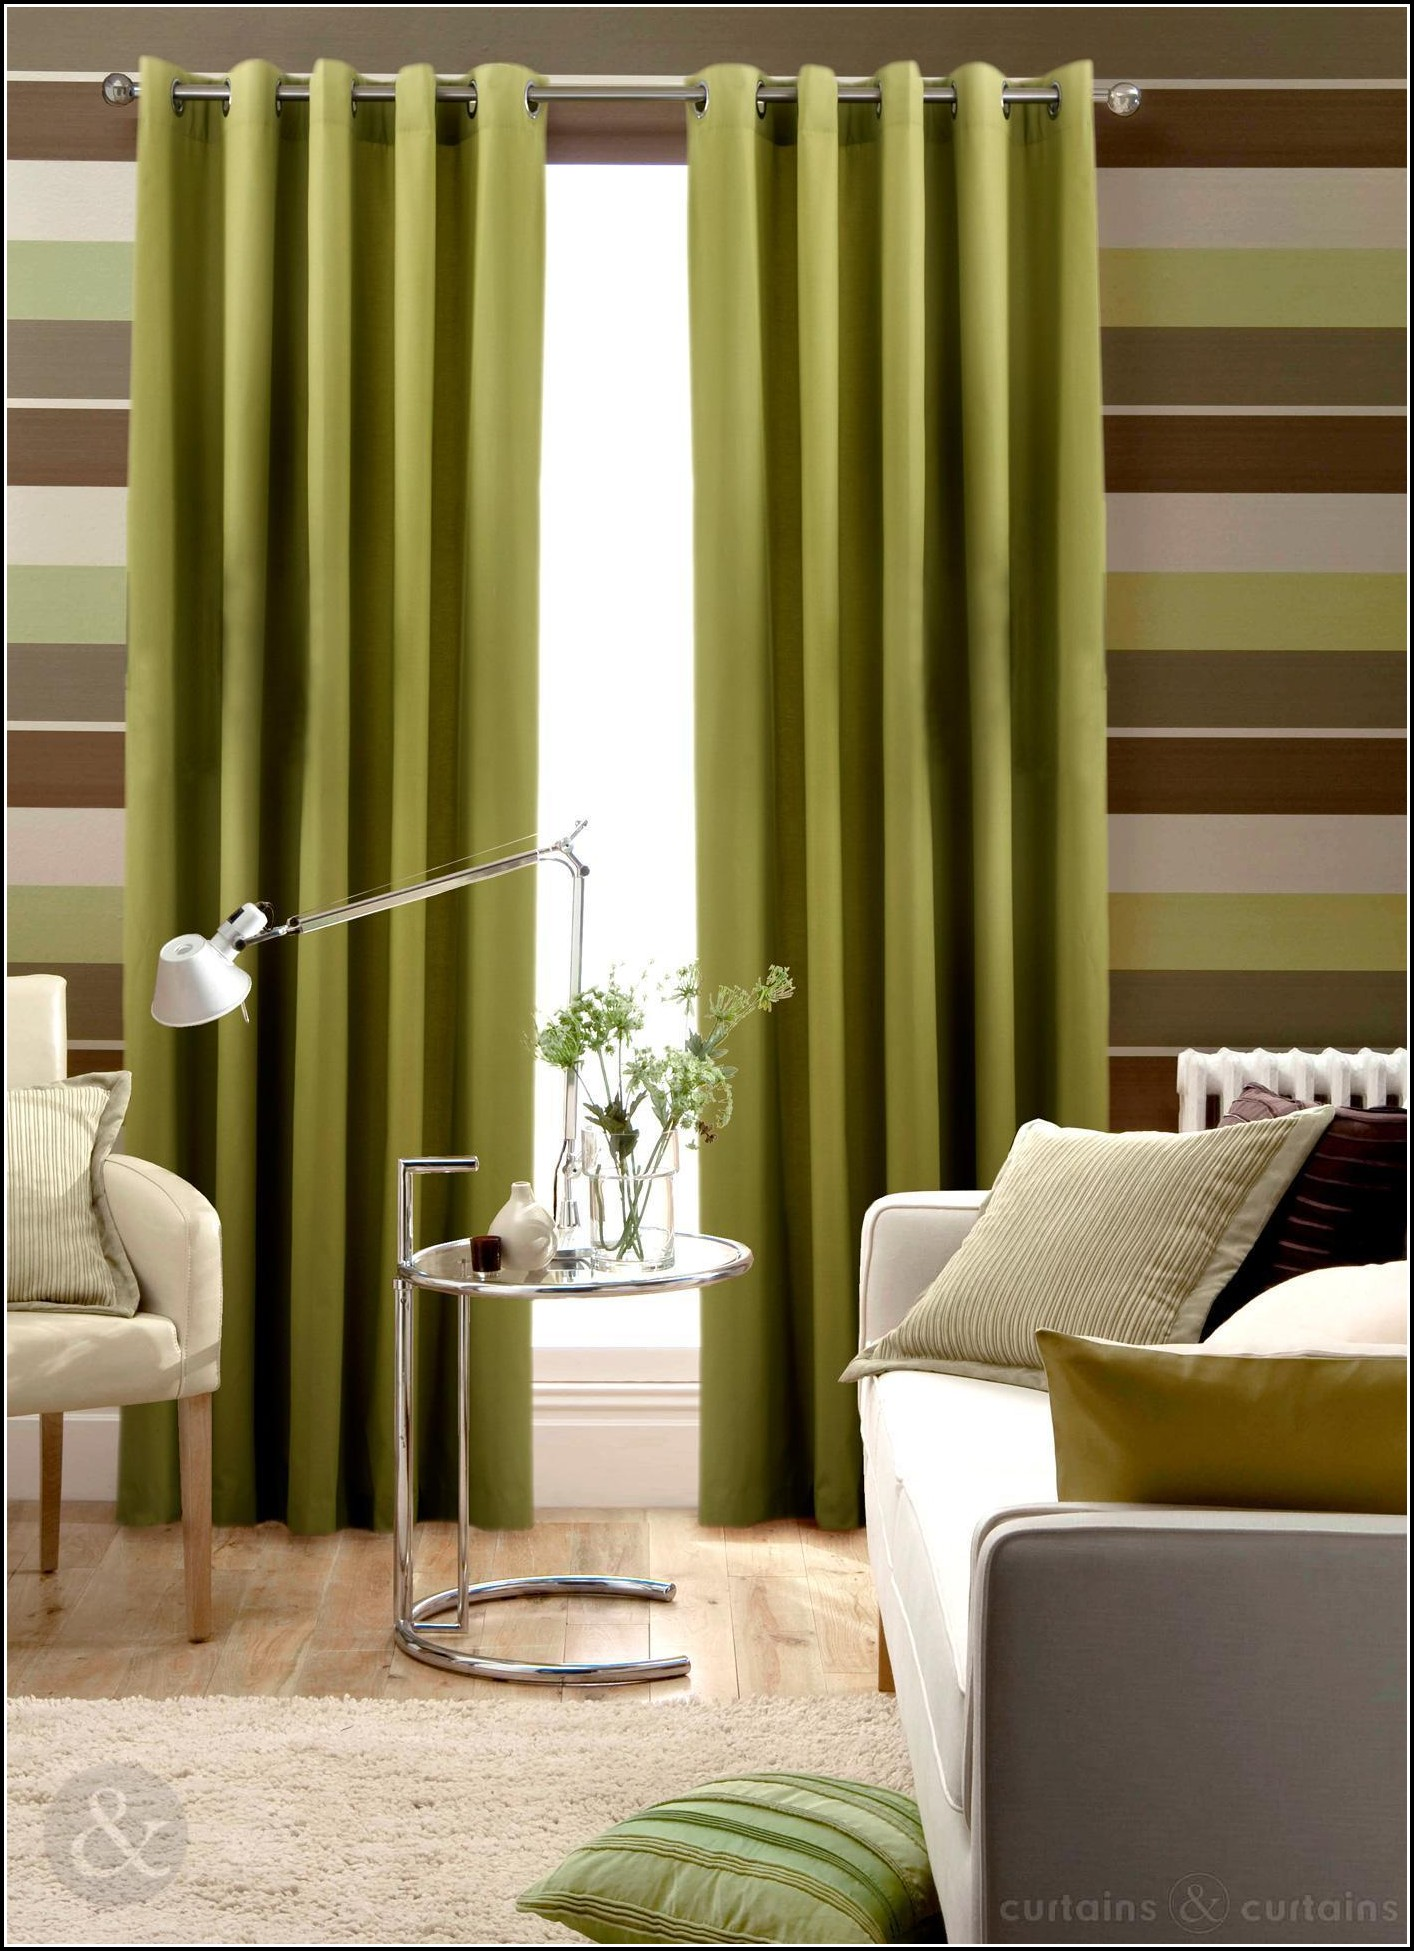 Lime green and brown striped curtains download page home design ideas galleries home design for Lime green curtains for bedroom